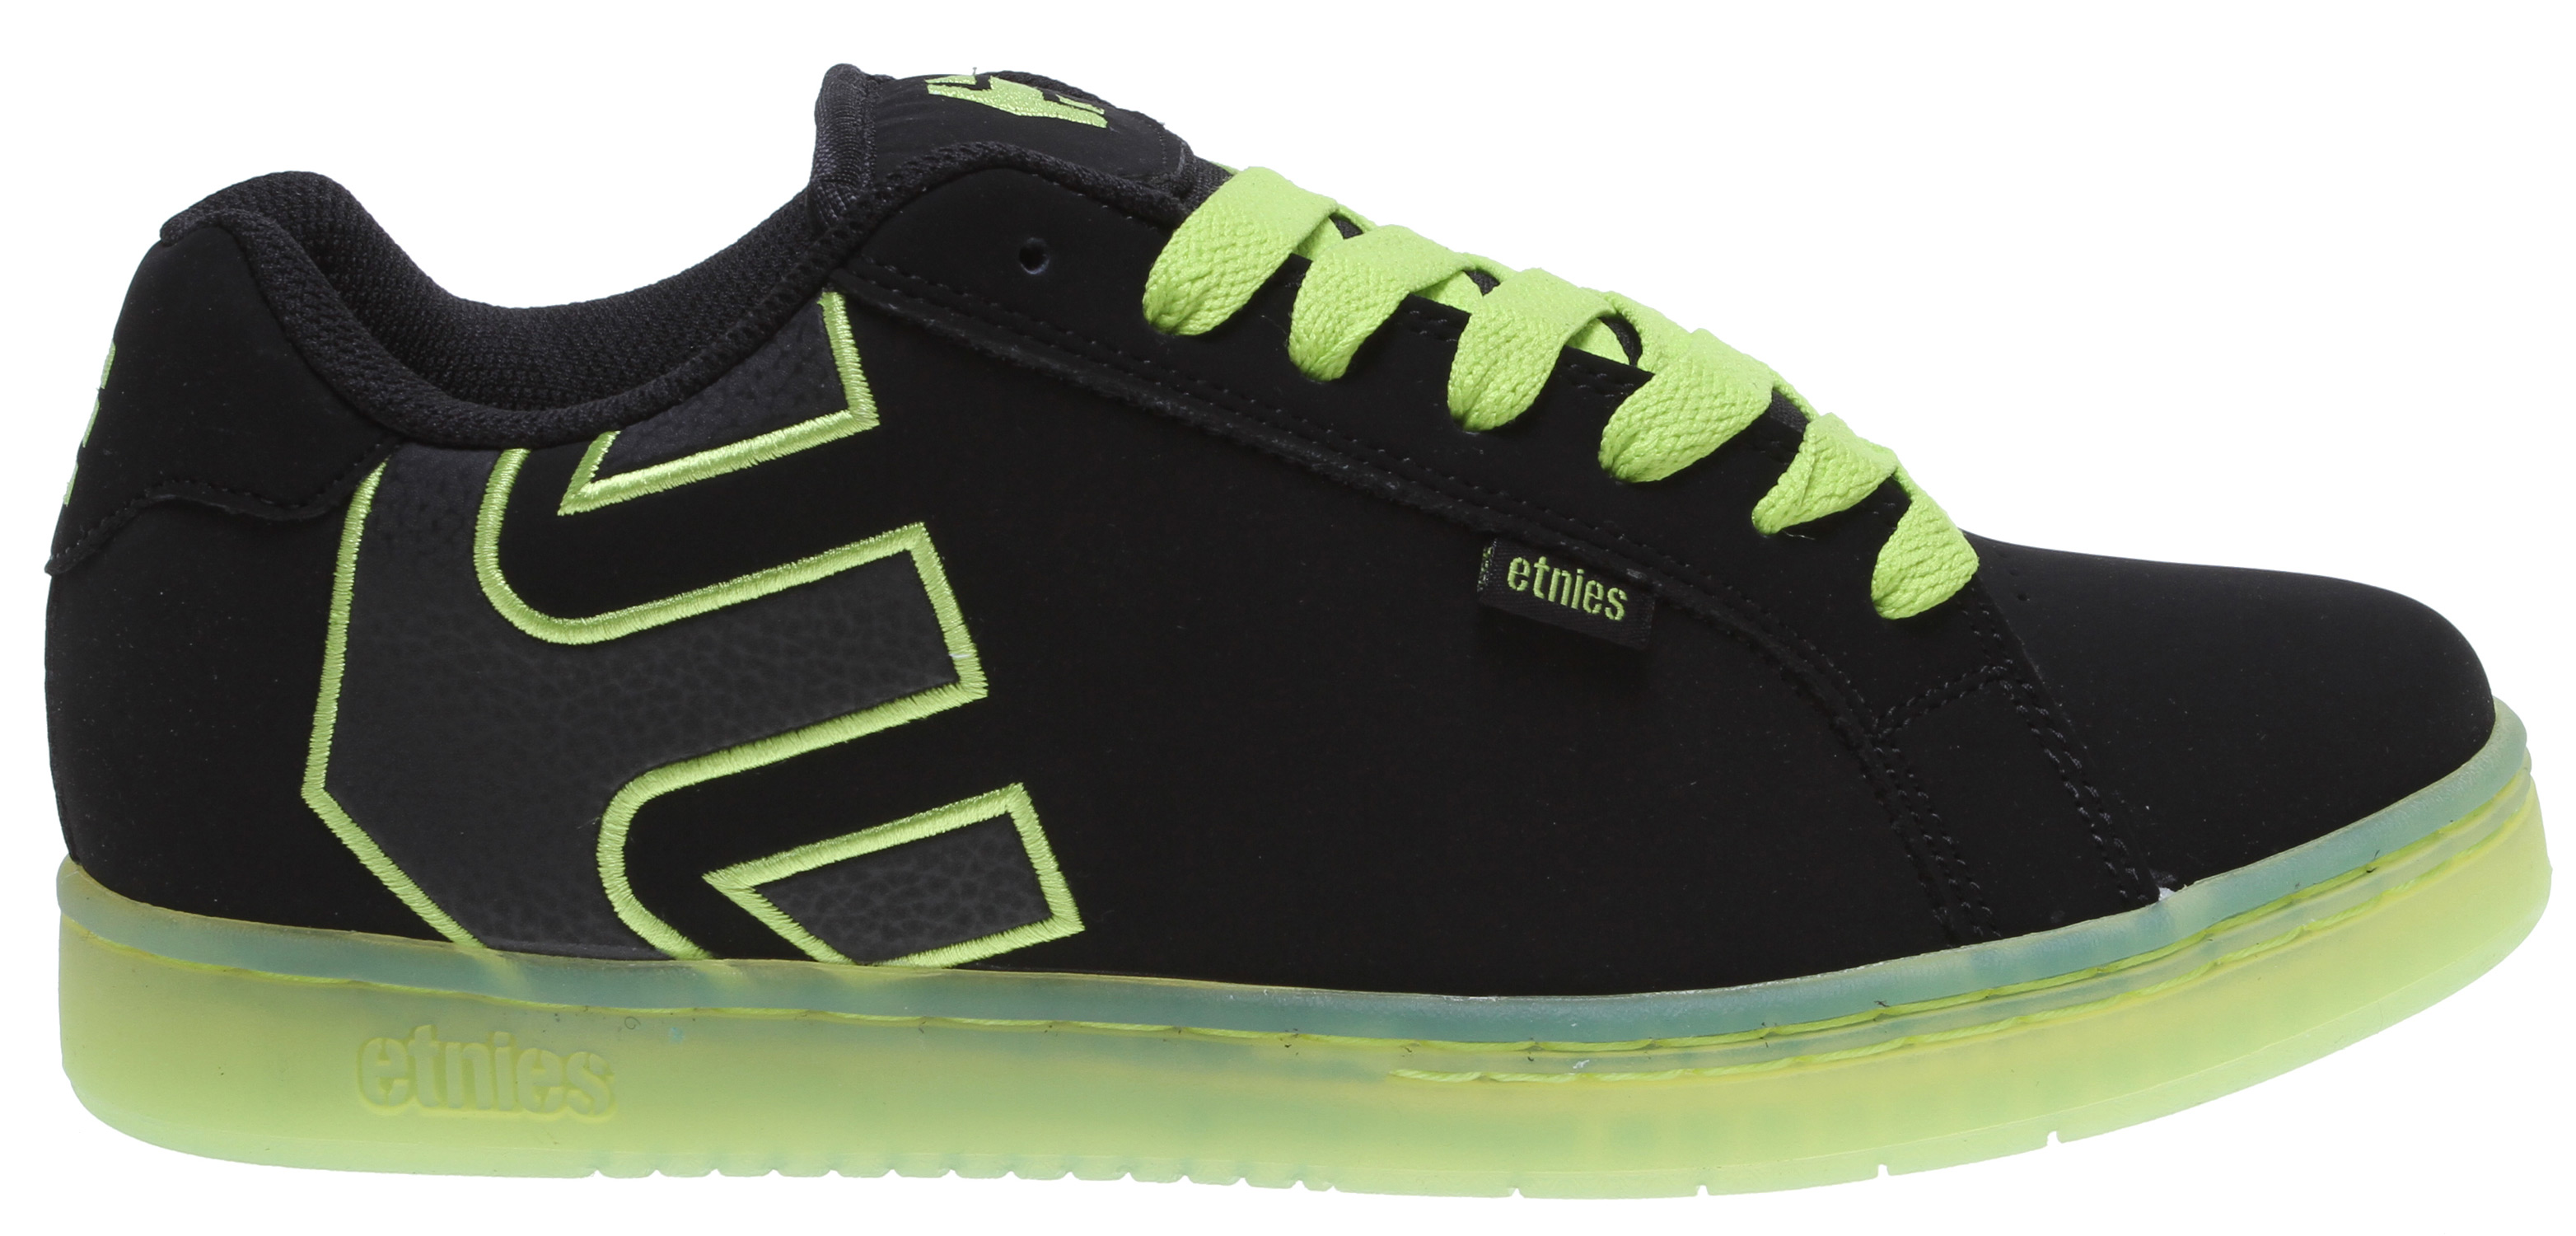 Fitness This long running etnies style and best seller has the trademark etnies arrow logo integrated into the heel area with elastic tongue-centering straps. It also features new 300 NBS rubber outsole with an internal EVA midsole, an STI Foam Lite Level 1 footbed and padded tongue and collar for additional protection and comfort. It is also available in the Metal Mulisha black/blue/grey colorway with new artwork and tongue branding, and the black/green/white Twitch/Famous Stars & Straps colorway featuring custom artwork and logos. - $69.95